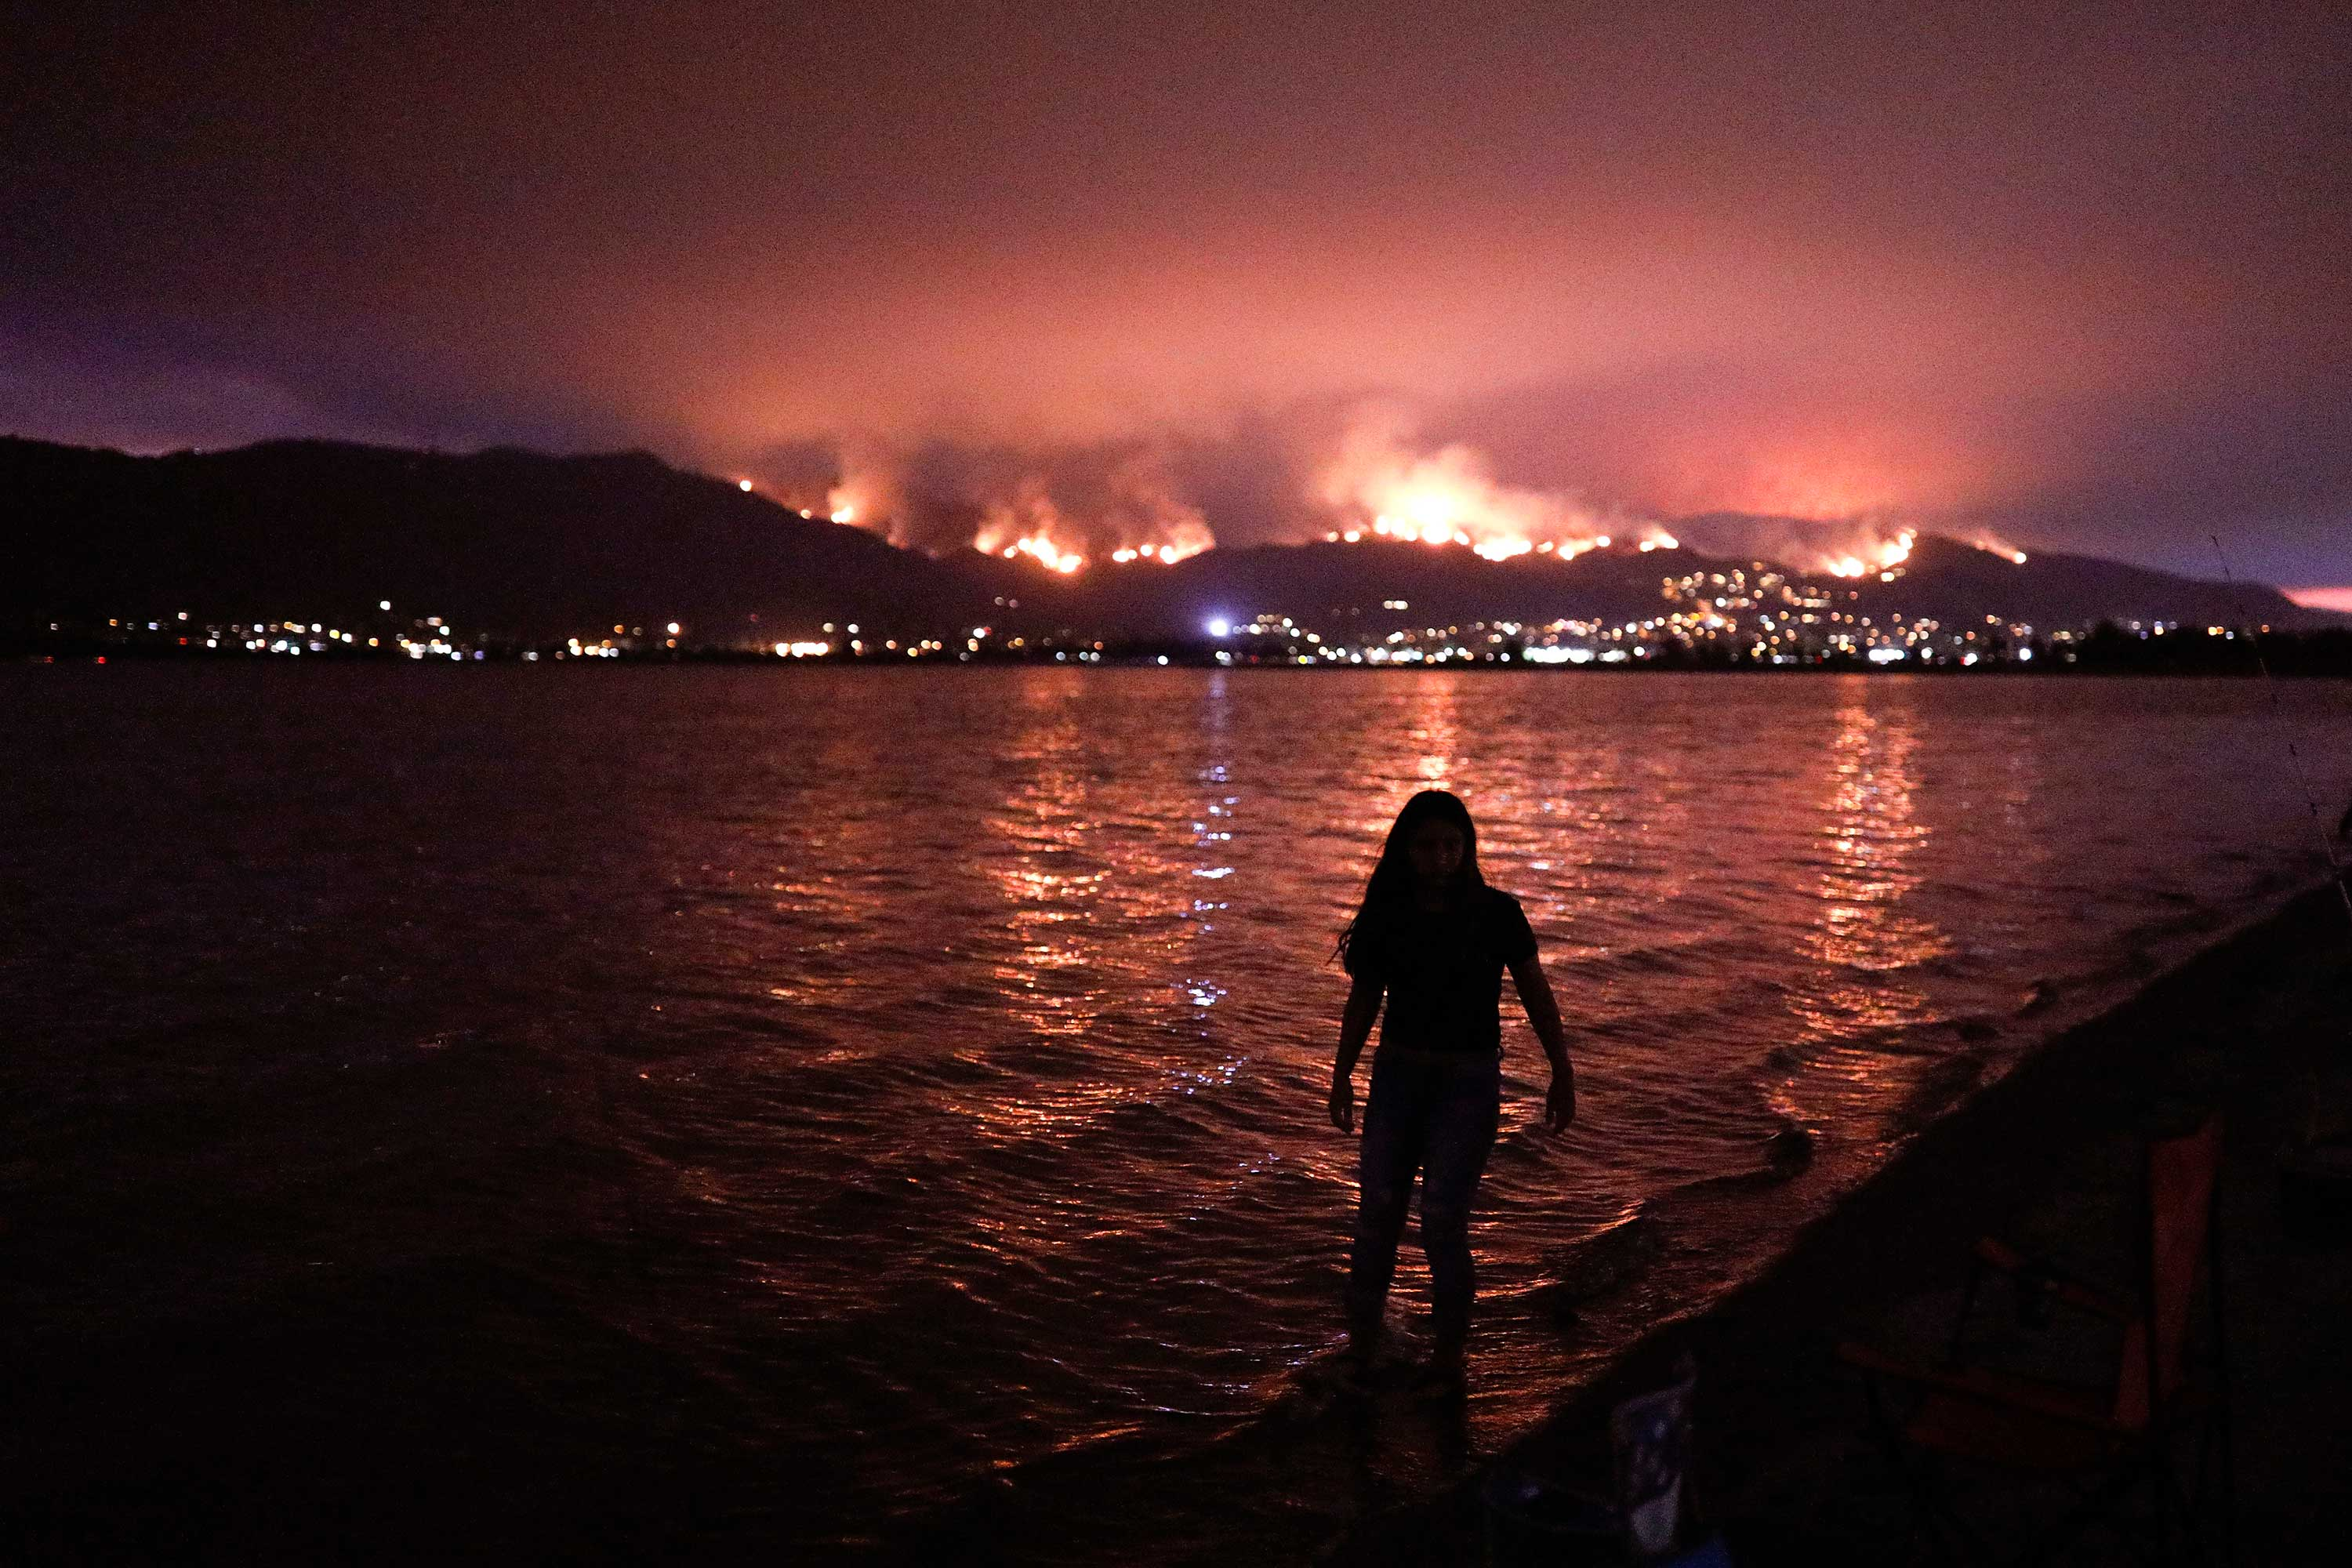 "<div class=""meta image-caption""><div class=""origin-logo origin-image none""><span>none</span></div><span class=""caption-text"">A girl wades through water while watching a wildfire burn in the Cleveland National Forest in Lake Elsinore, Calif., Wednesday, Aug. 8, 2018. (Jae C. Hong/AP Photo)</span></div>"